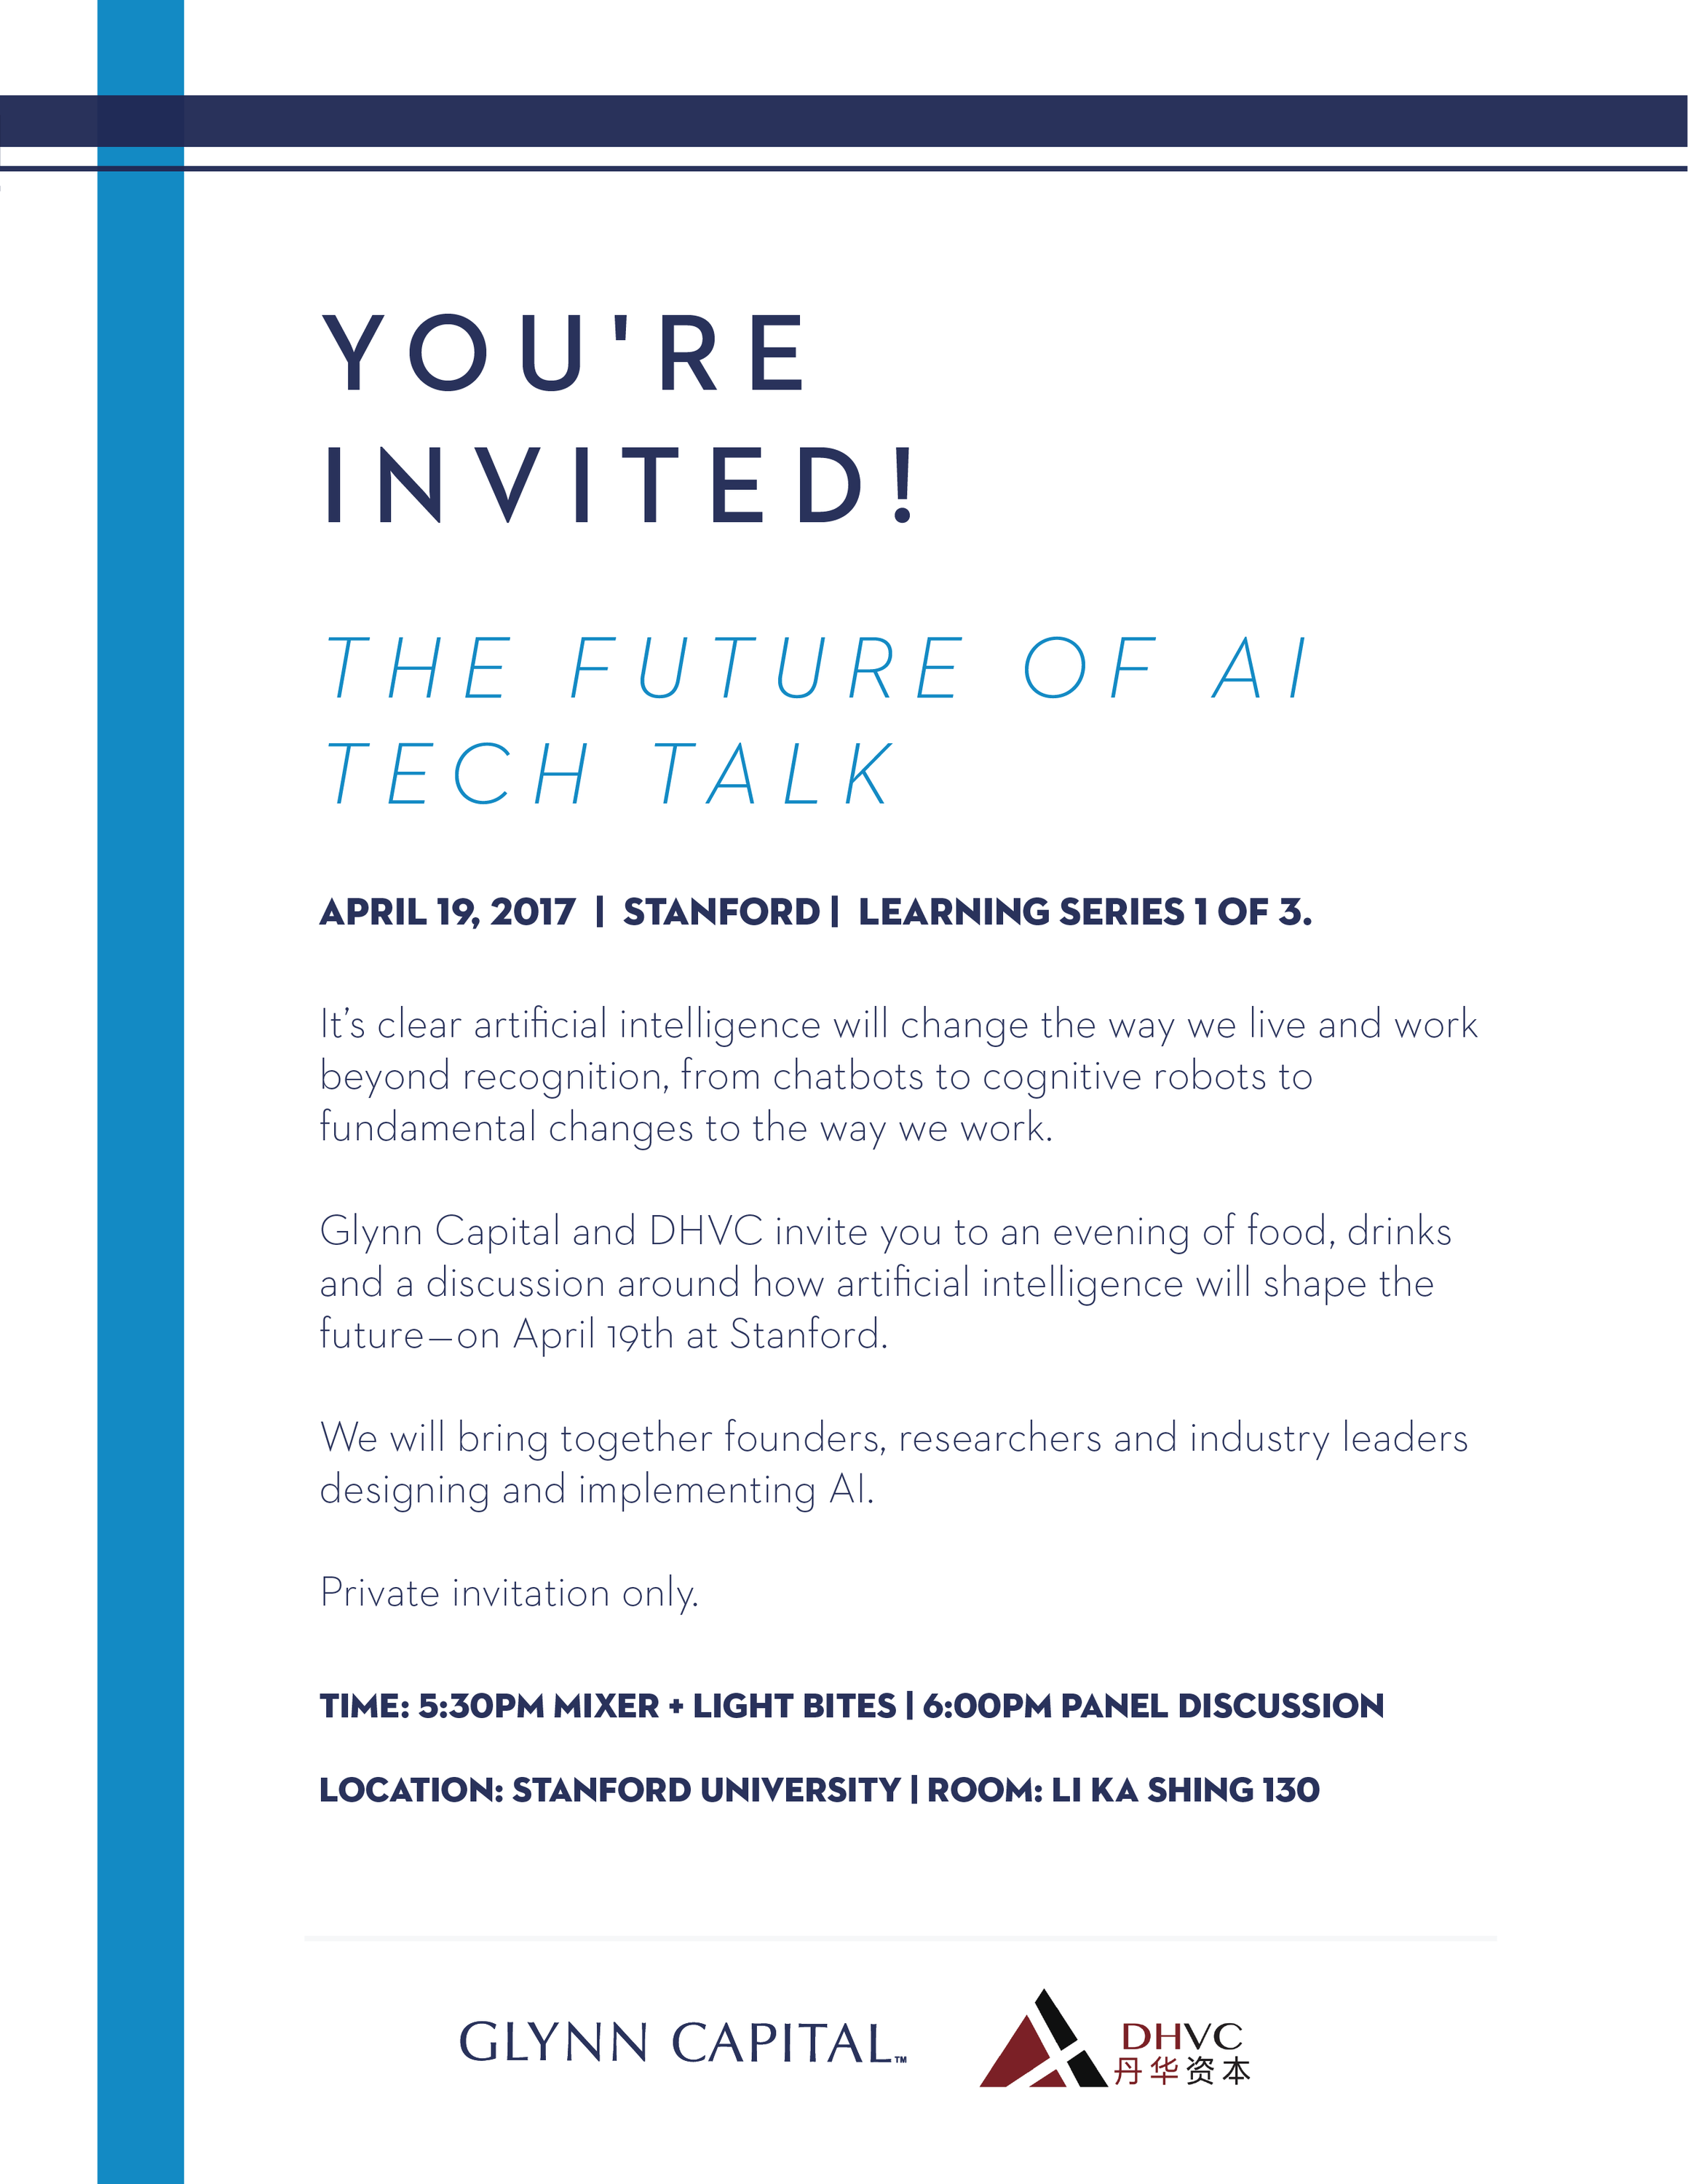 f32.The-Future-of-AI-Tech-Talk-Invite.pn